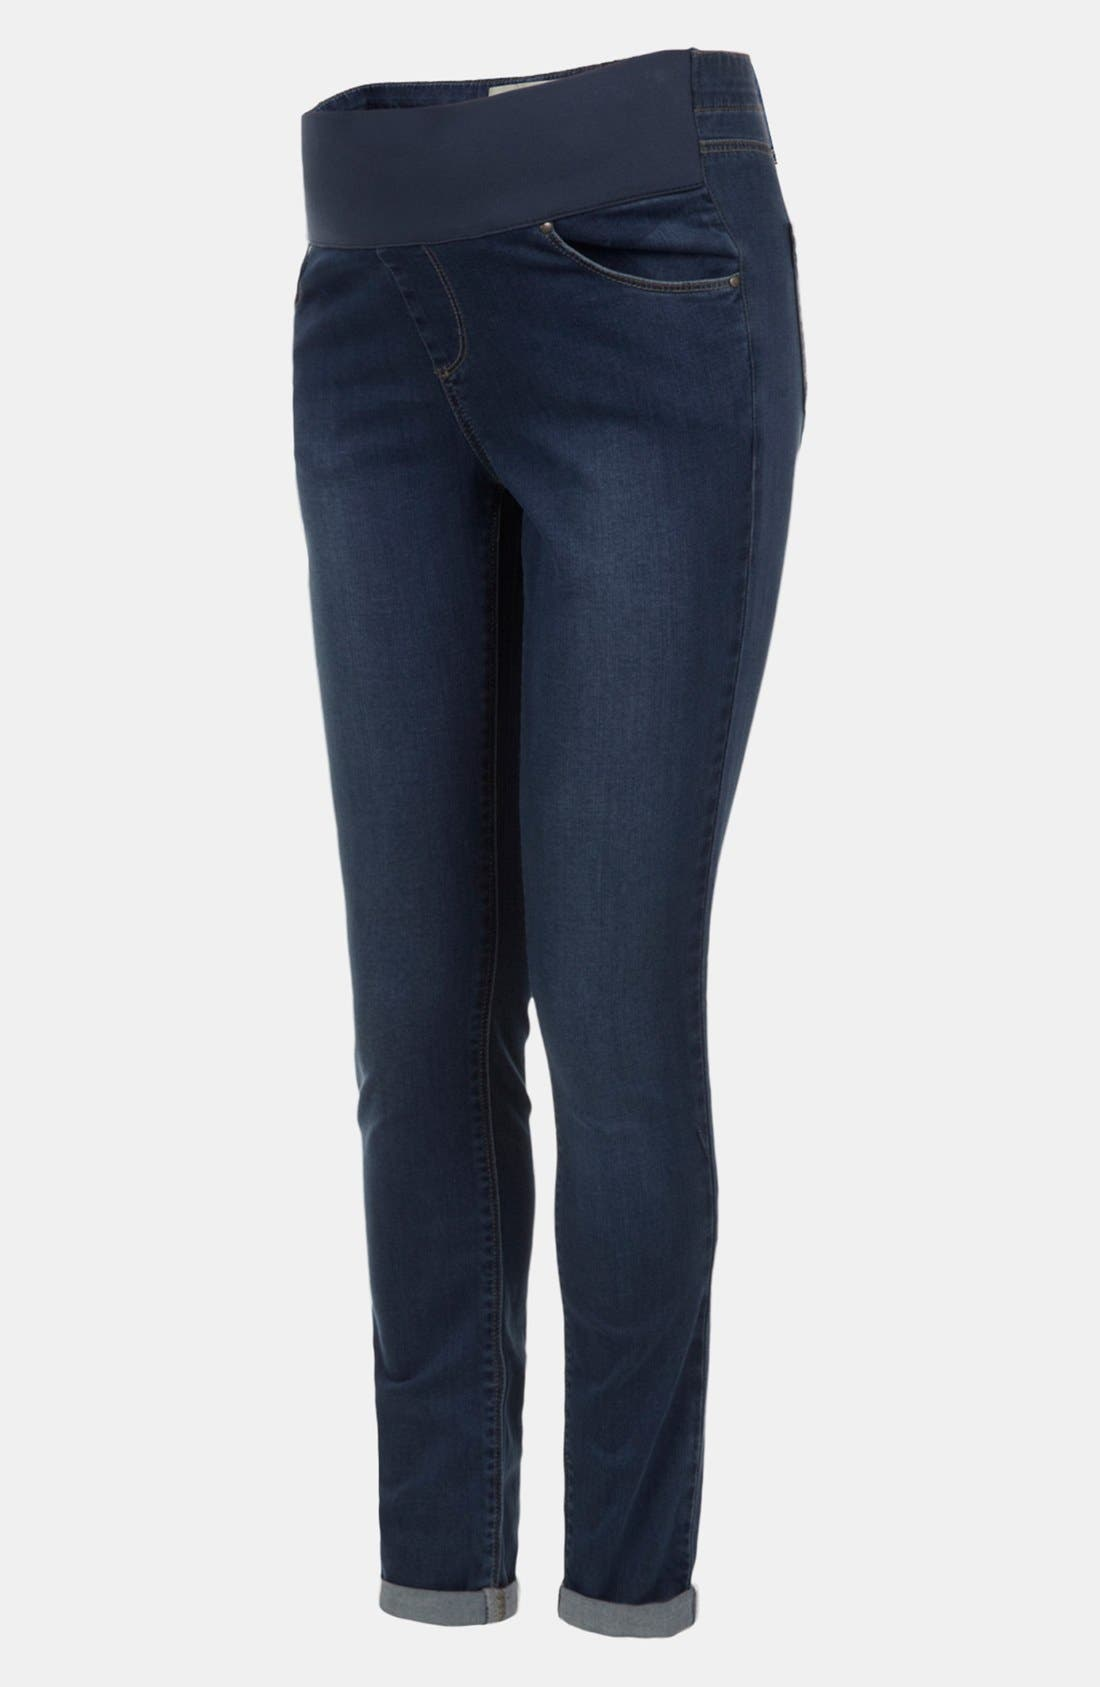 TOPSHOP, 'Leigh' Maternity Jeans, Main thumbnail 1, color, 420